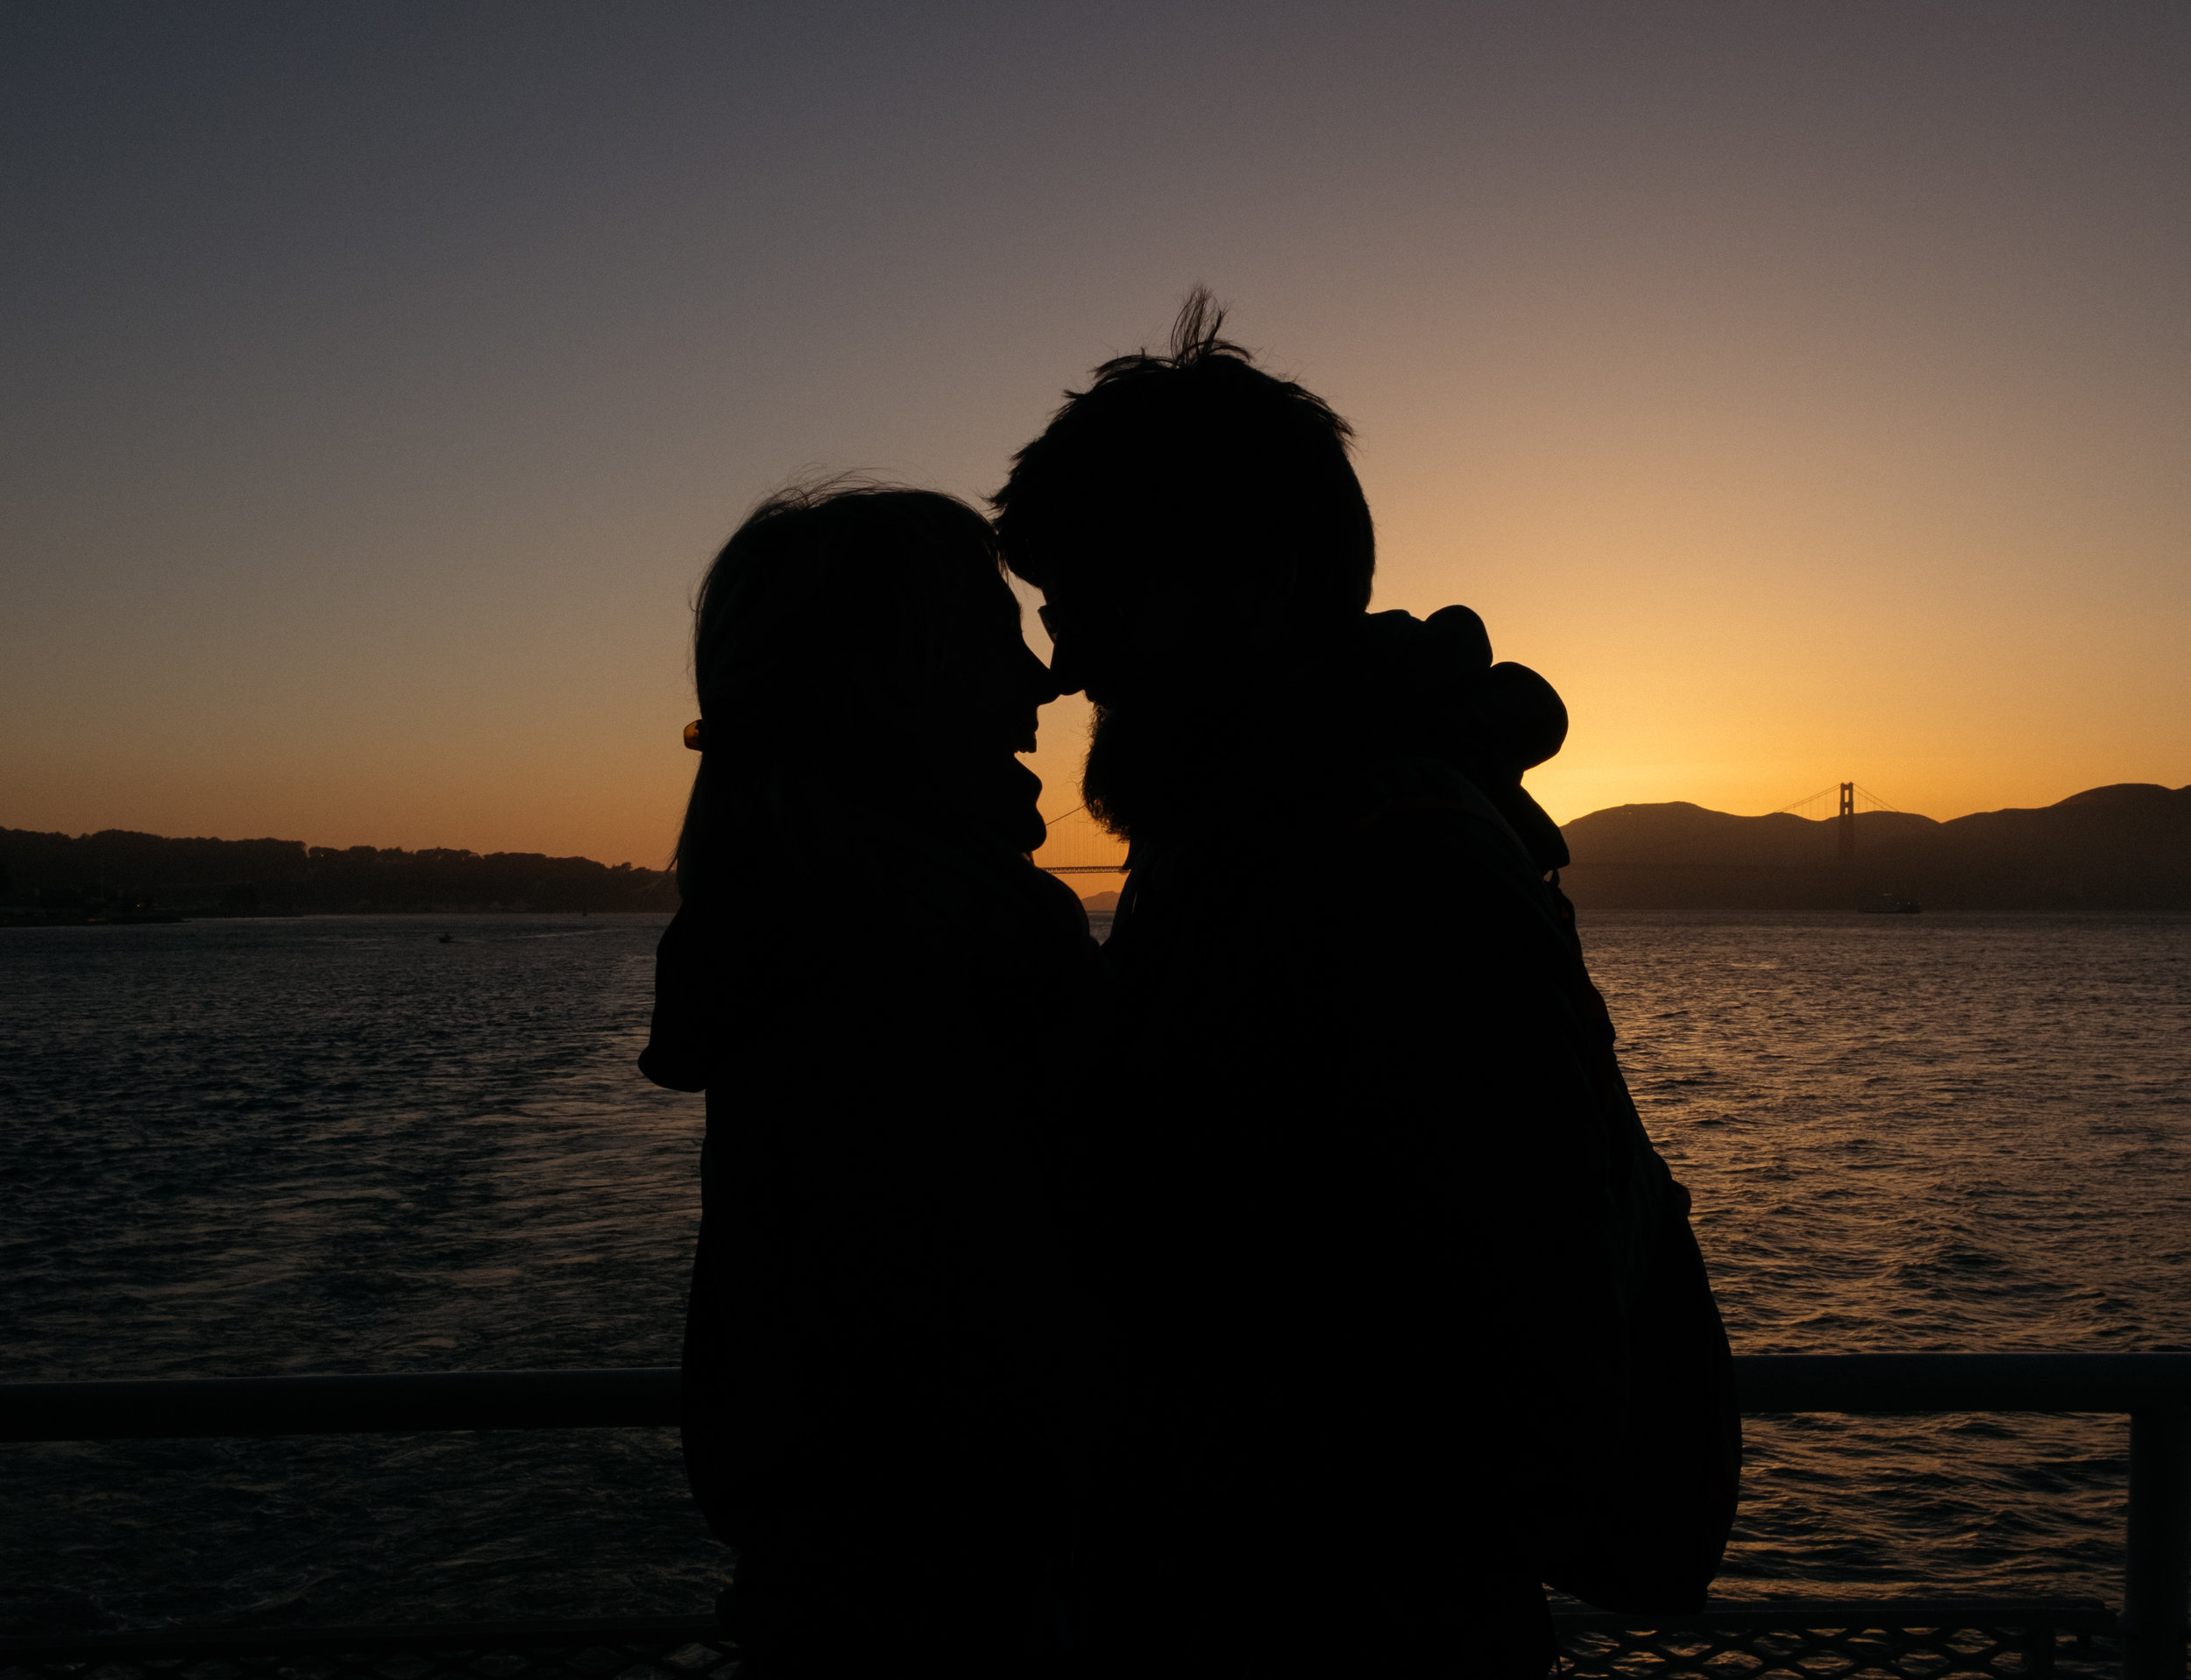 Couple silhouette at sunset with Golden Gate Bridge in background